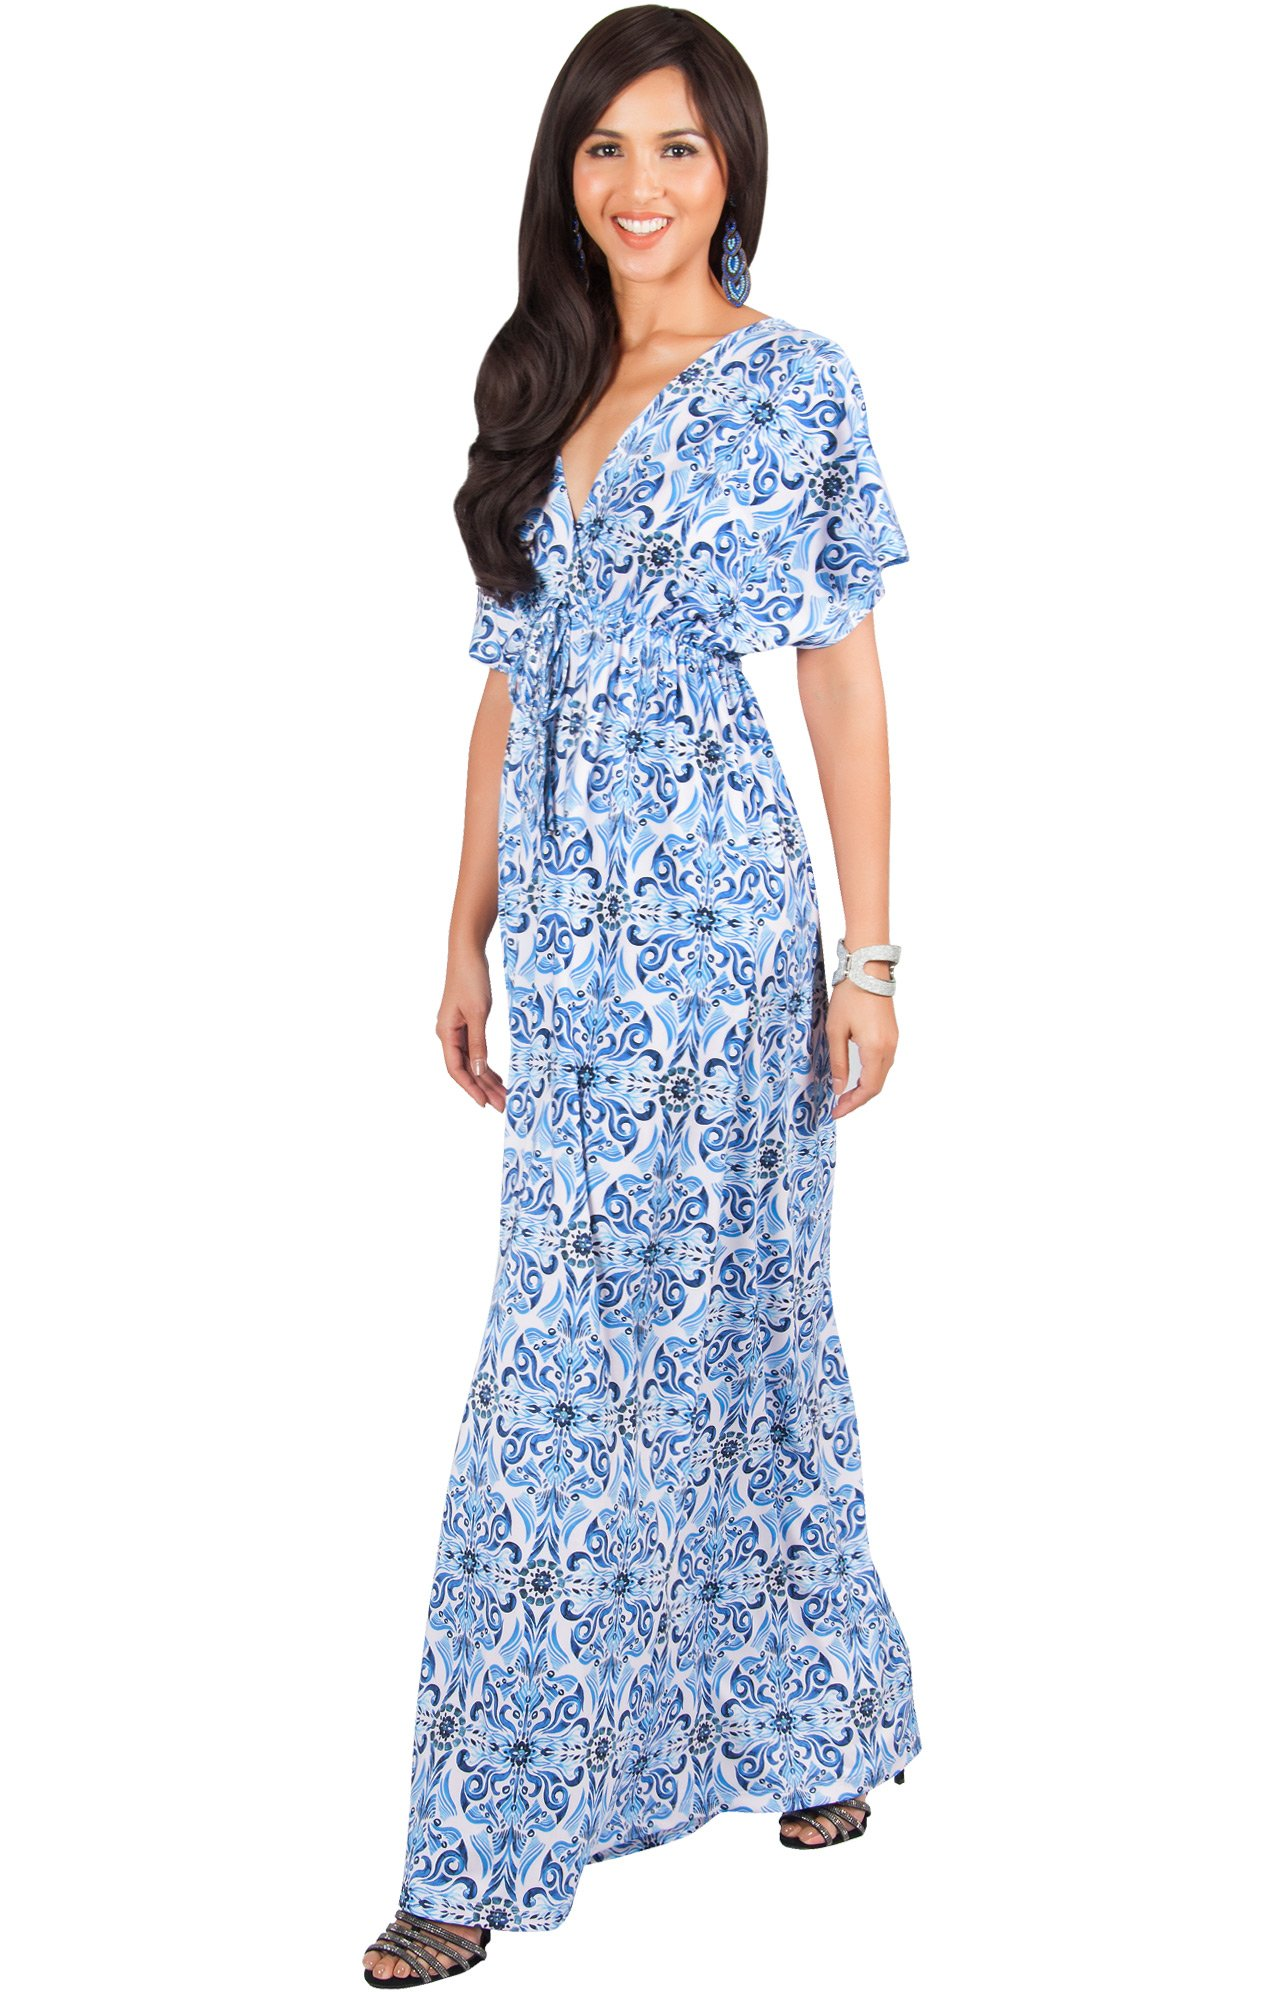 e094a9527d ... Short Sleeve Printed Spring Summer Flowy Sundress Cute Casual Evening  Damask Print Party Gown Gowns Maxi Dress Dresses